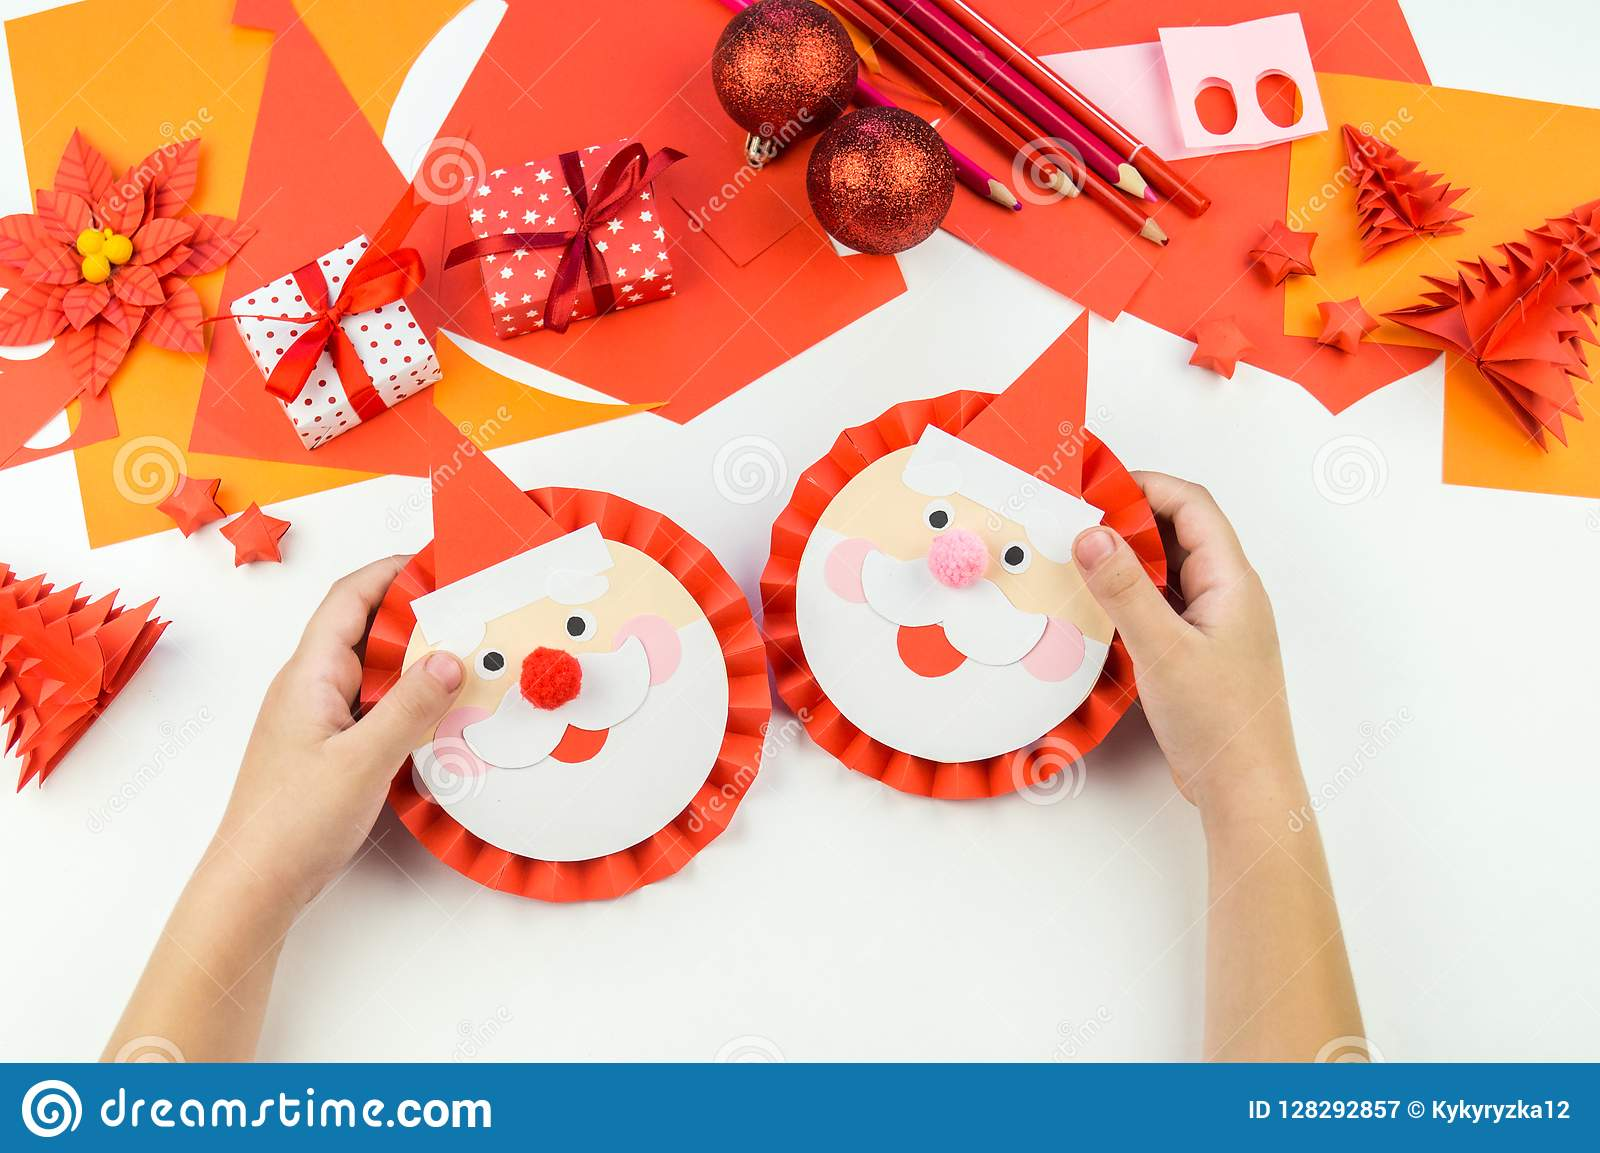 Christmas Origami Santa Claus - Easy origami - How to make an easy ... | 1153x1600